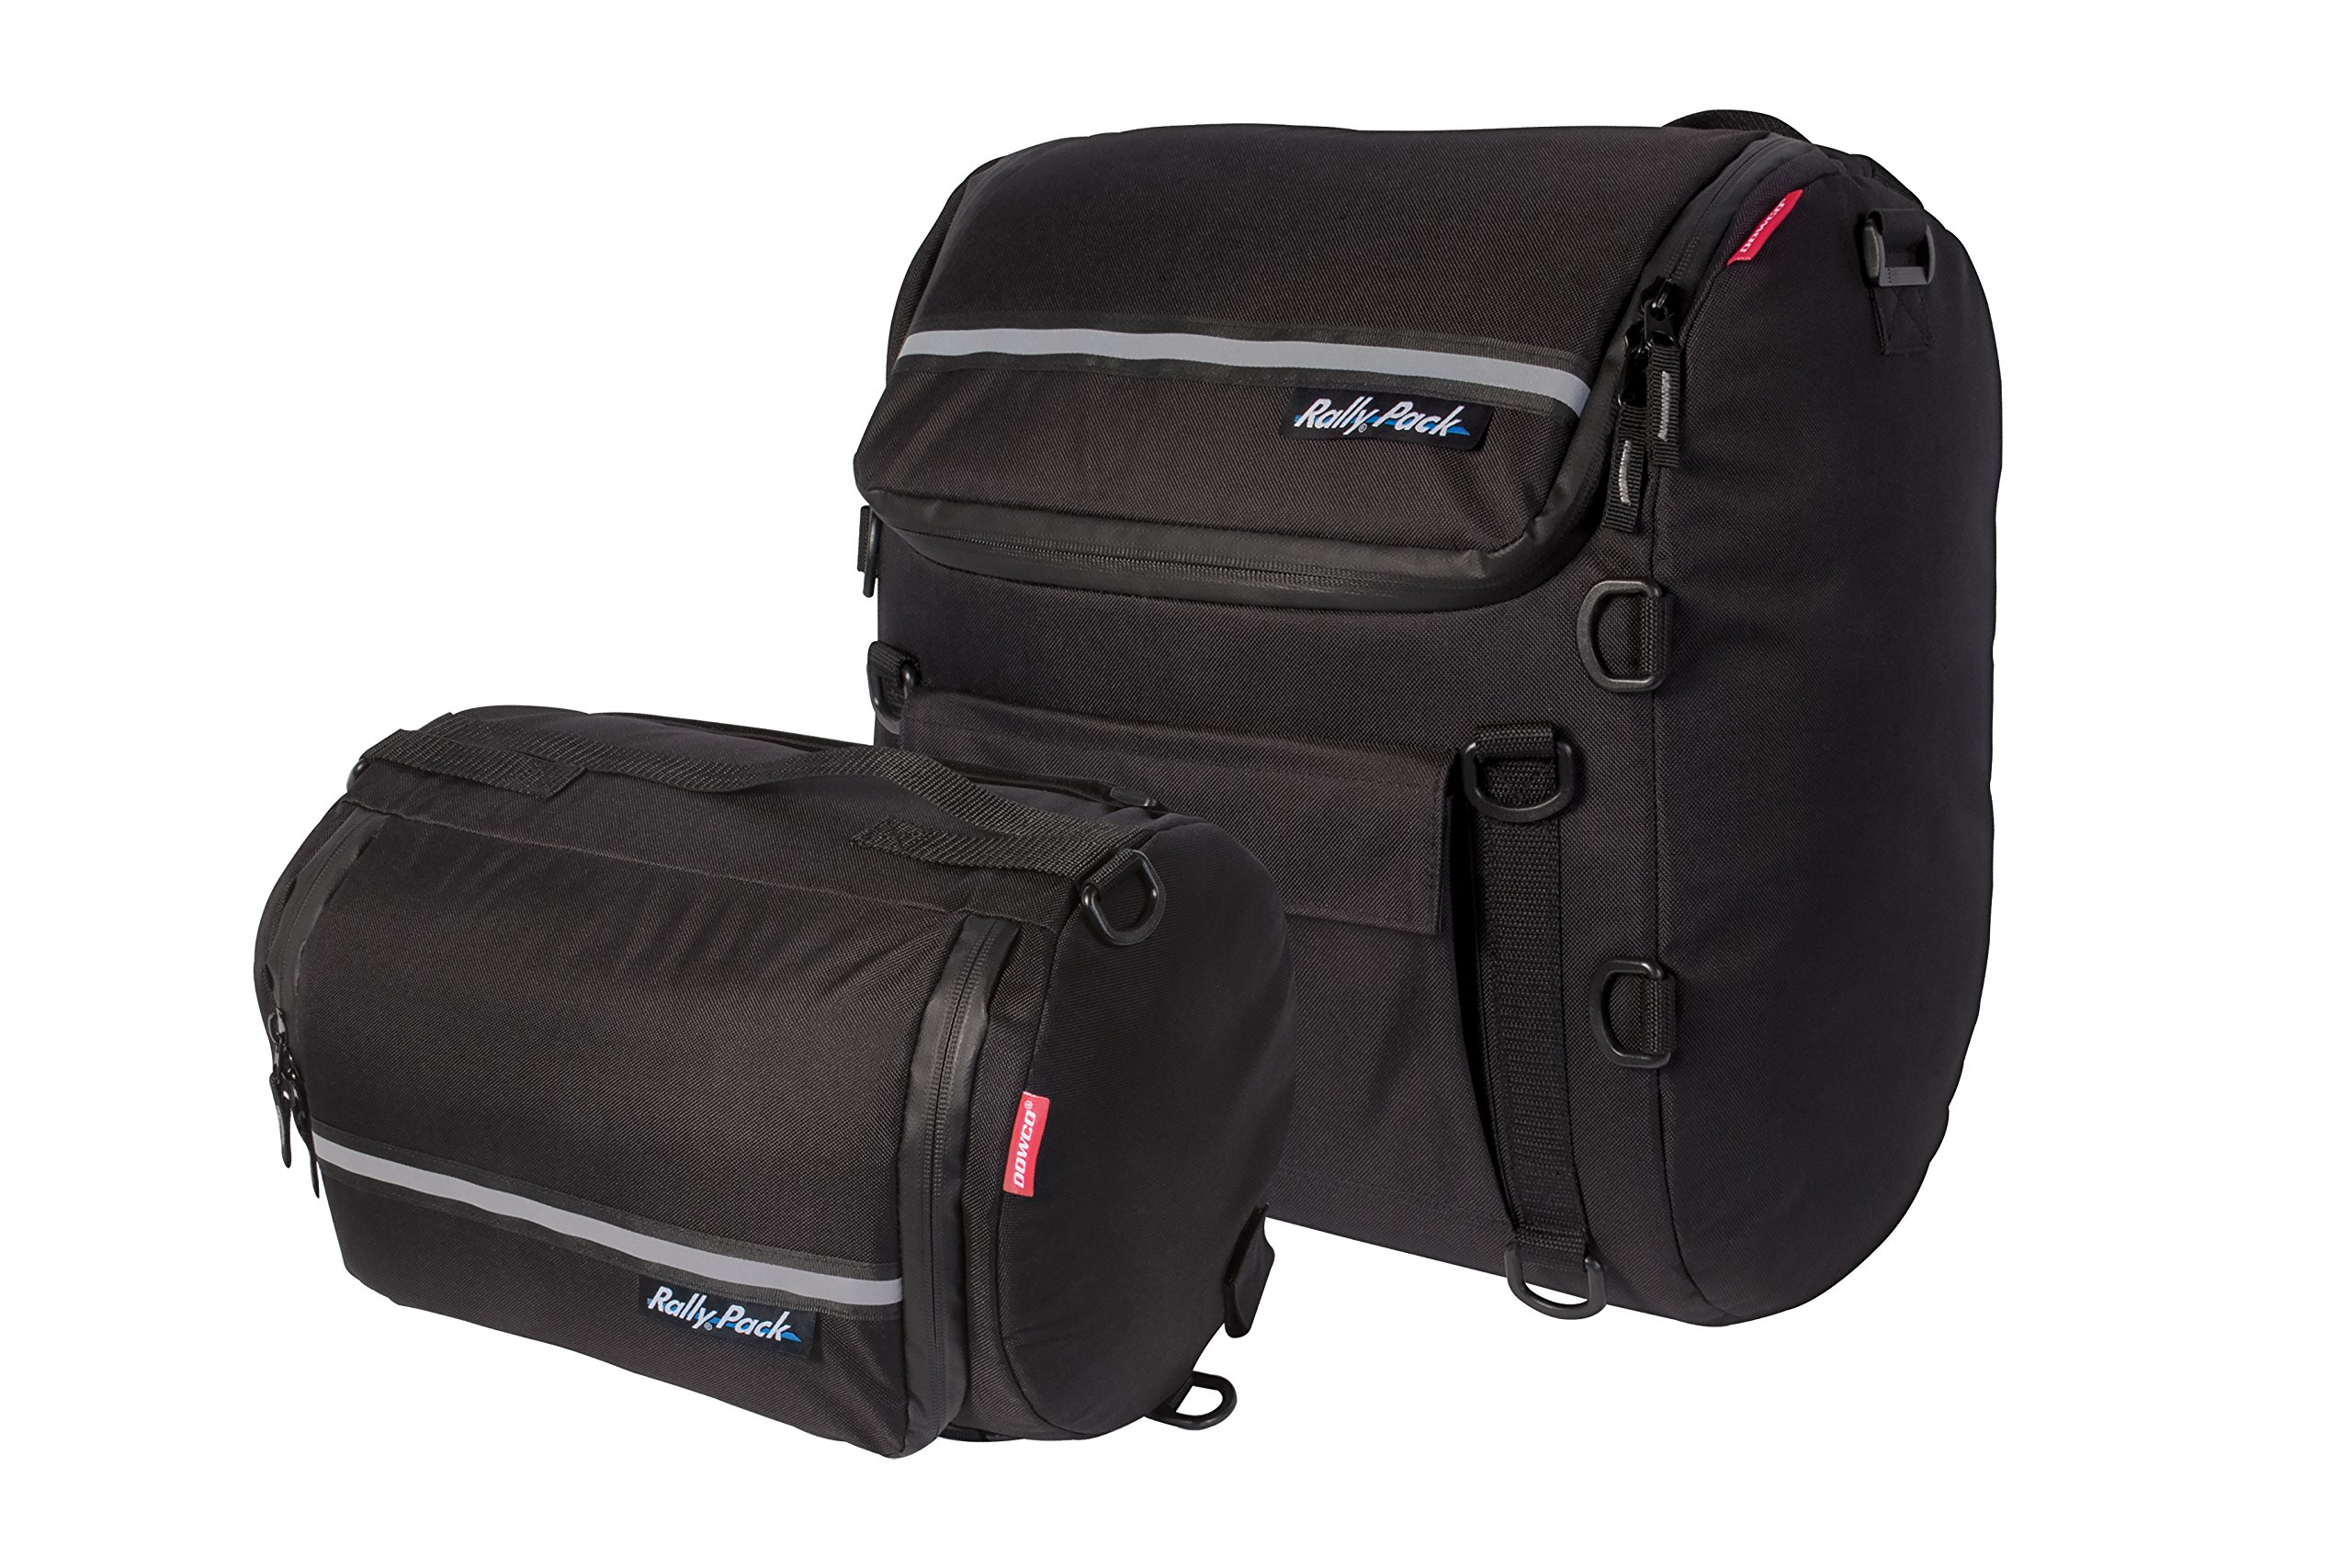 Dowco Rally Pack by 50030-00 Water Resistant Reflective 2 Piece Motorcycle Luggage System: Black, 35 Liter Large Bag/21 Liter Small Bag Capacity